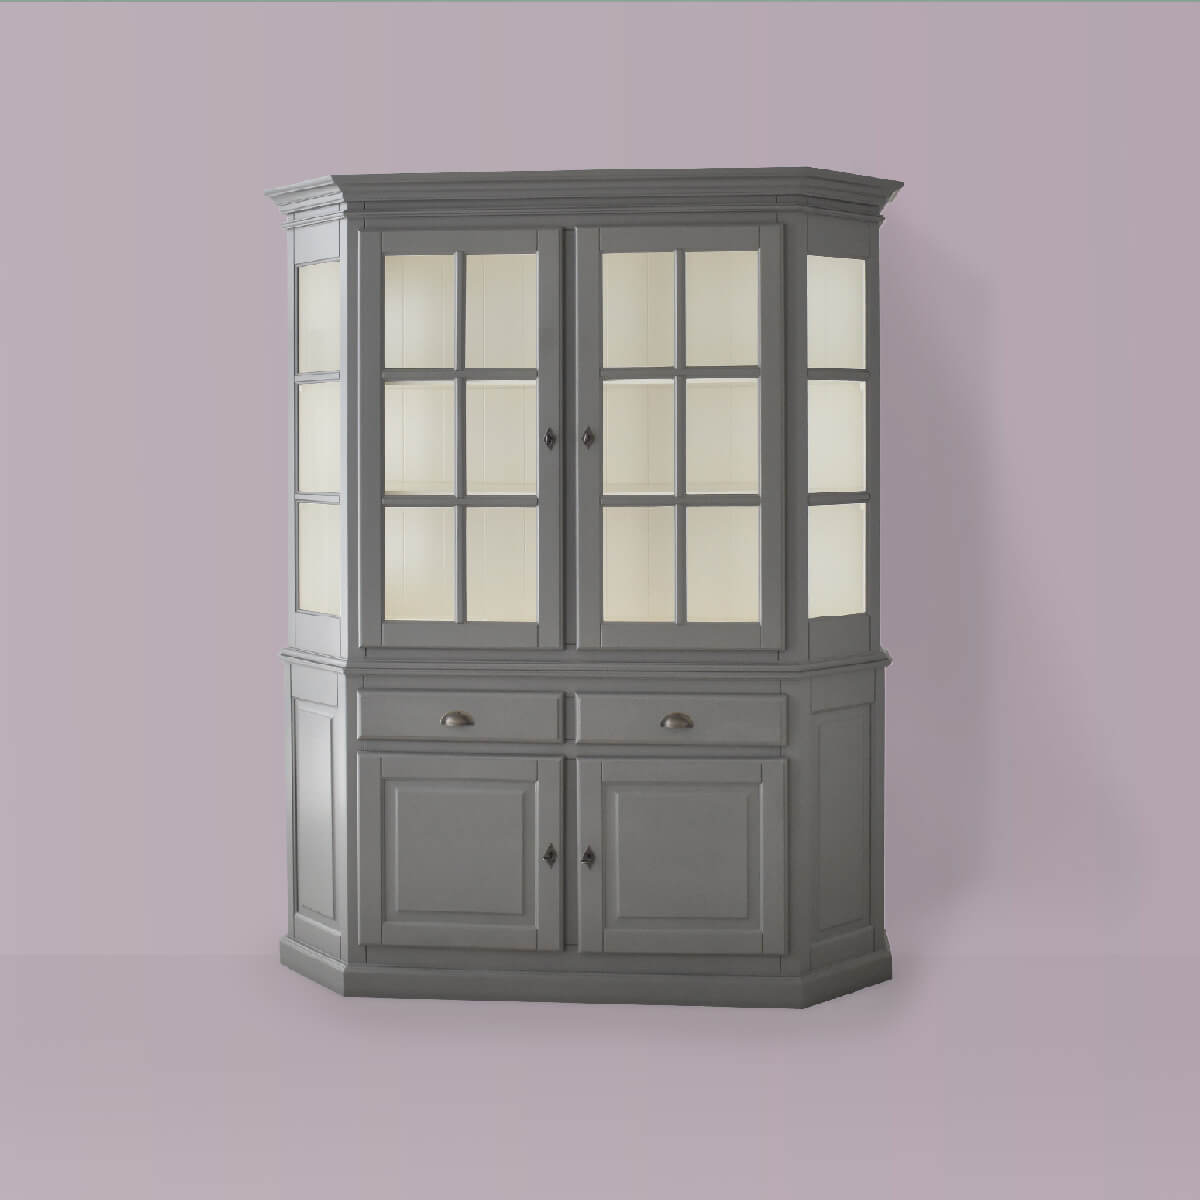 Cabinet3-cozyhome